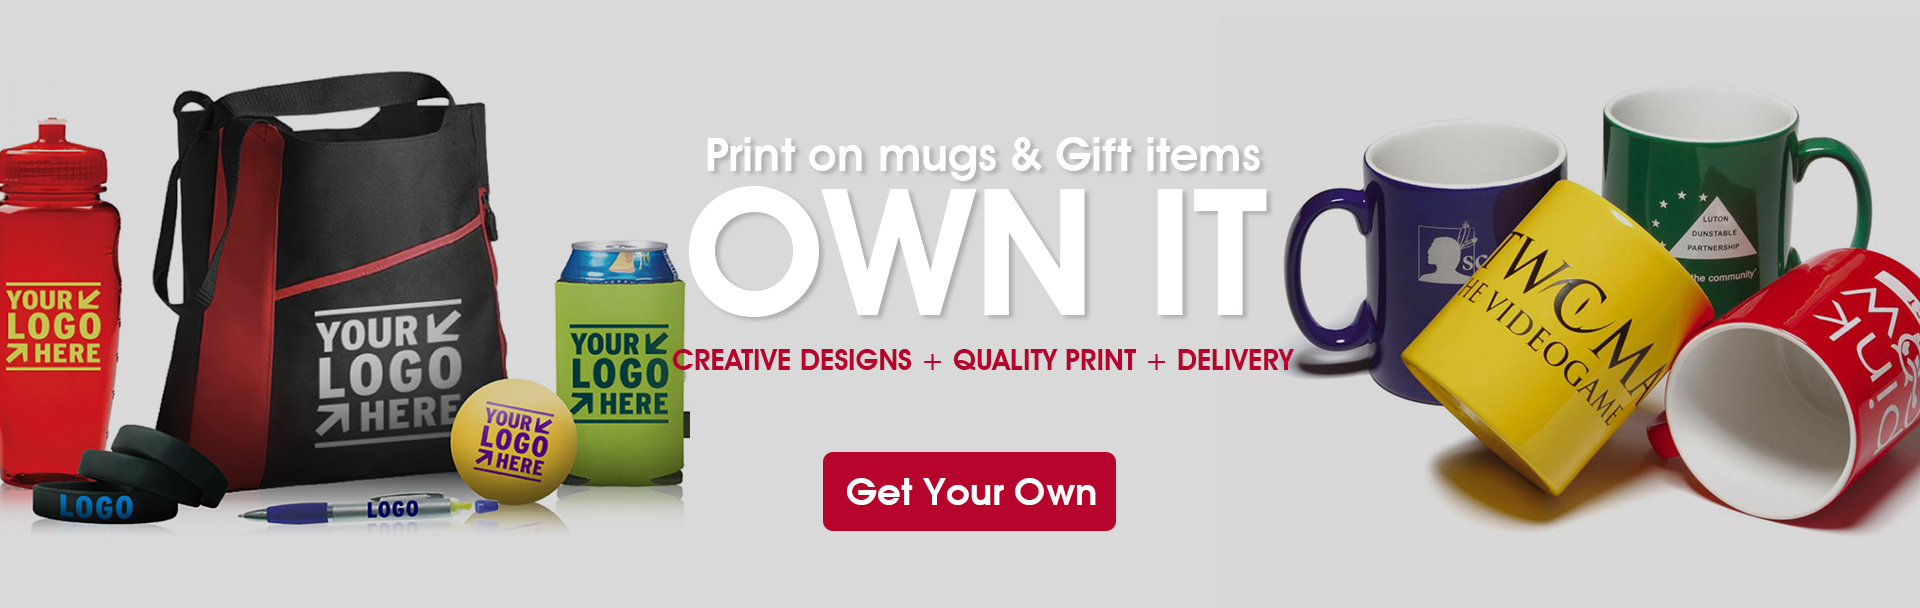 Corporate Gifts Printing in noida sector 62